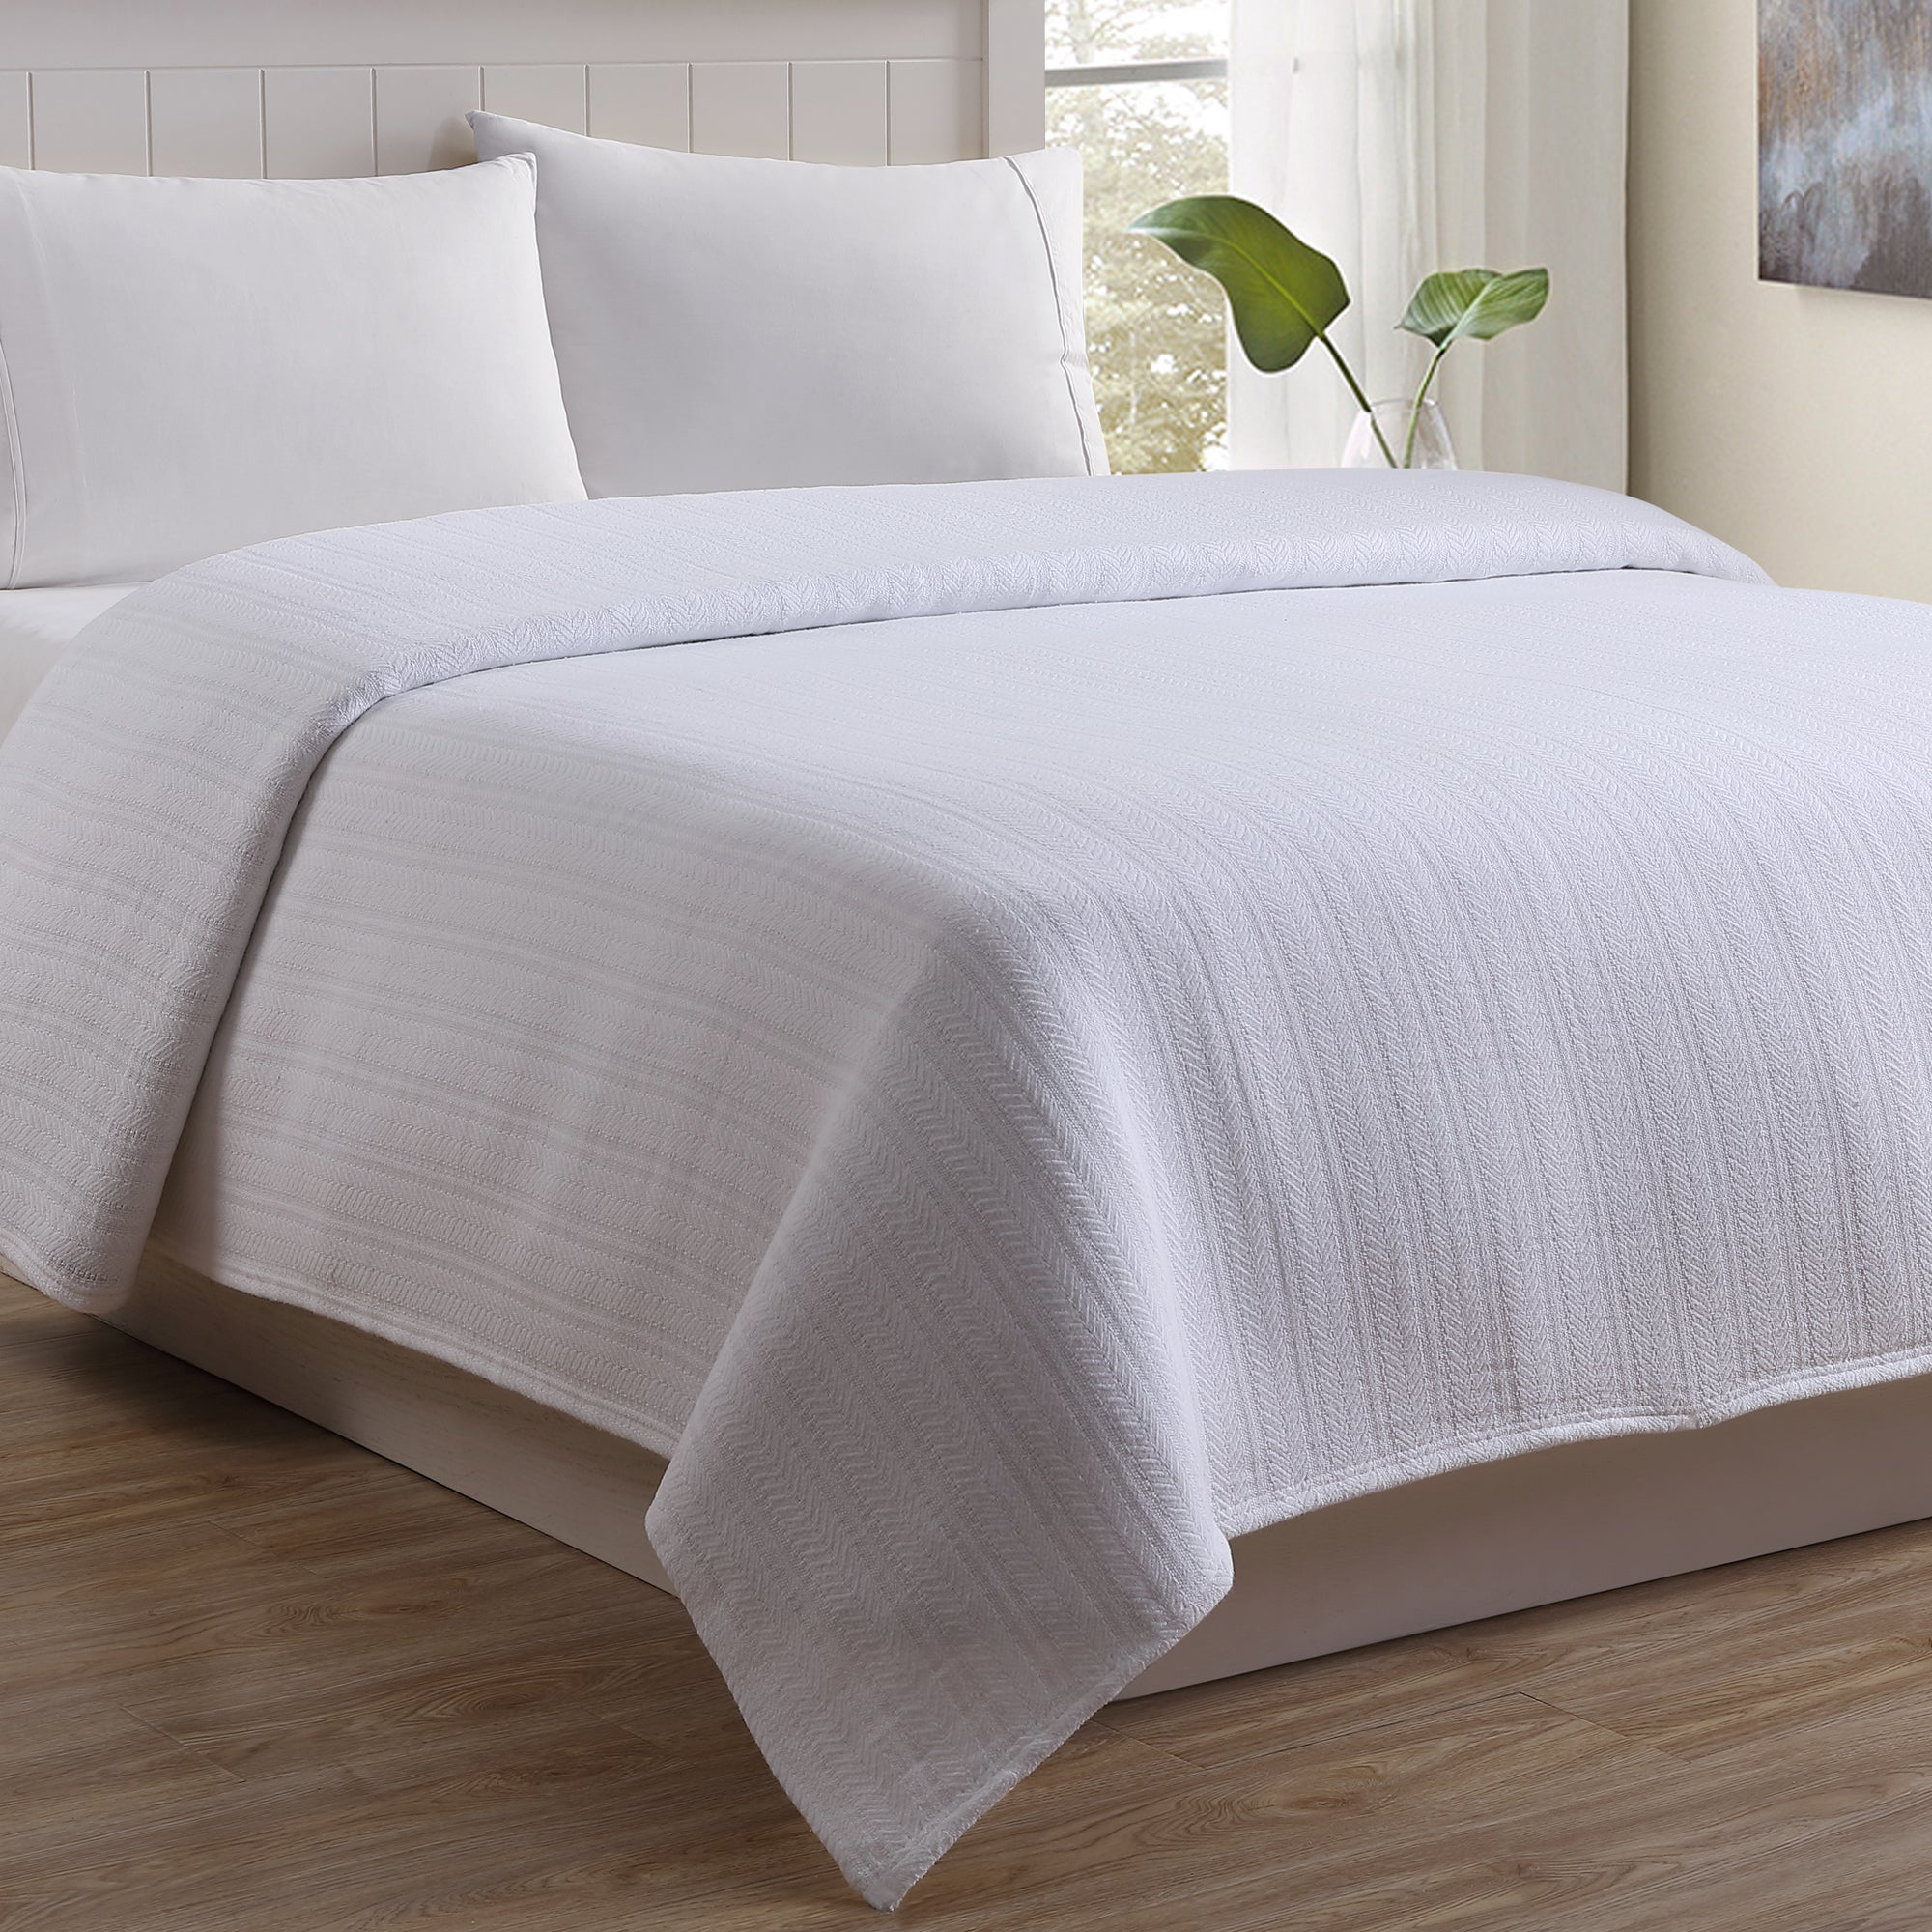 White Cotton Cable Woven Blanket Cozy Bed Full//Queen